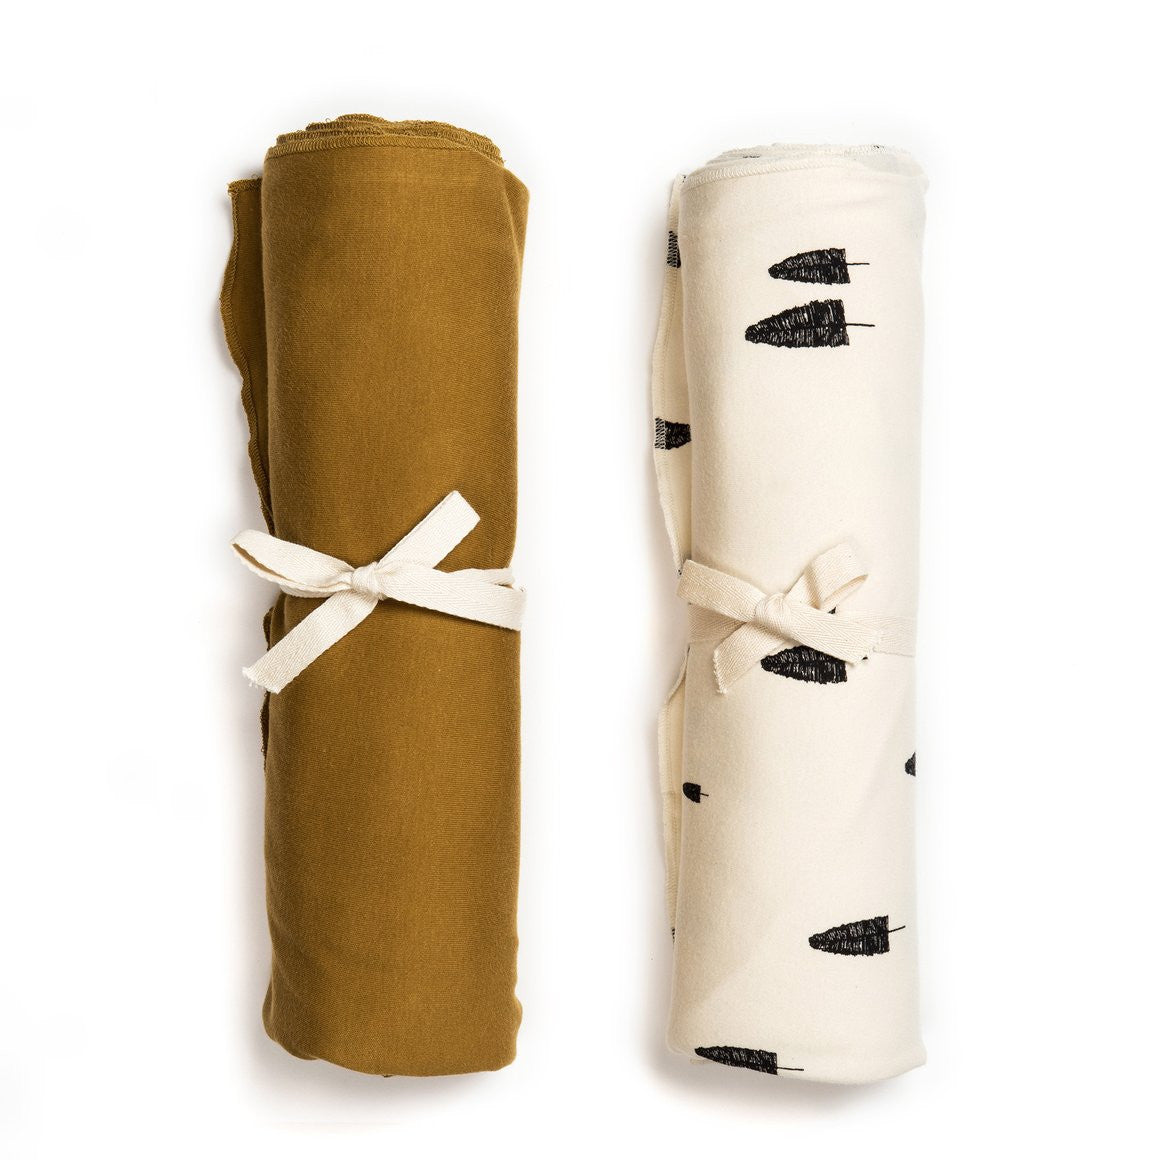 Kid Wild Ochre & Forest Swaddle Blanket Set - Ladida